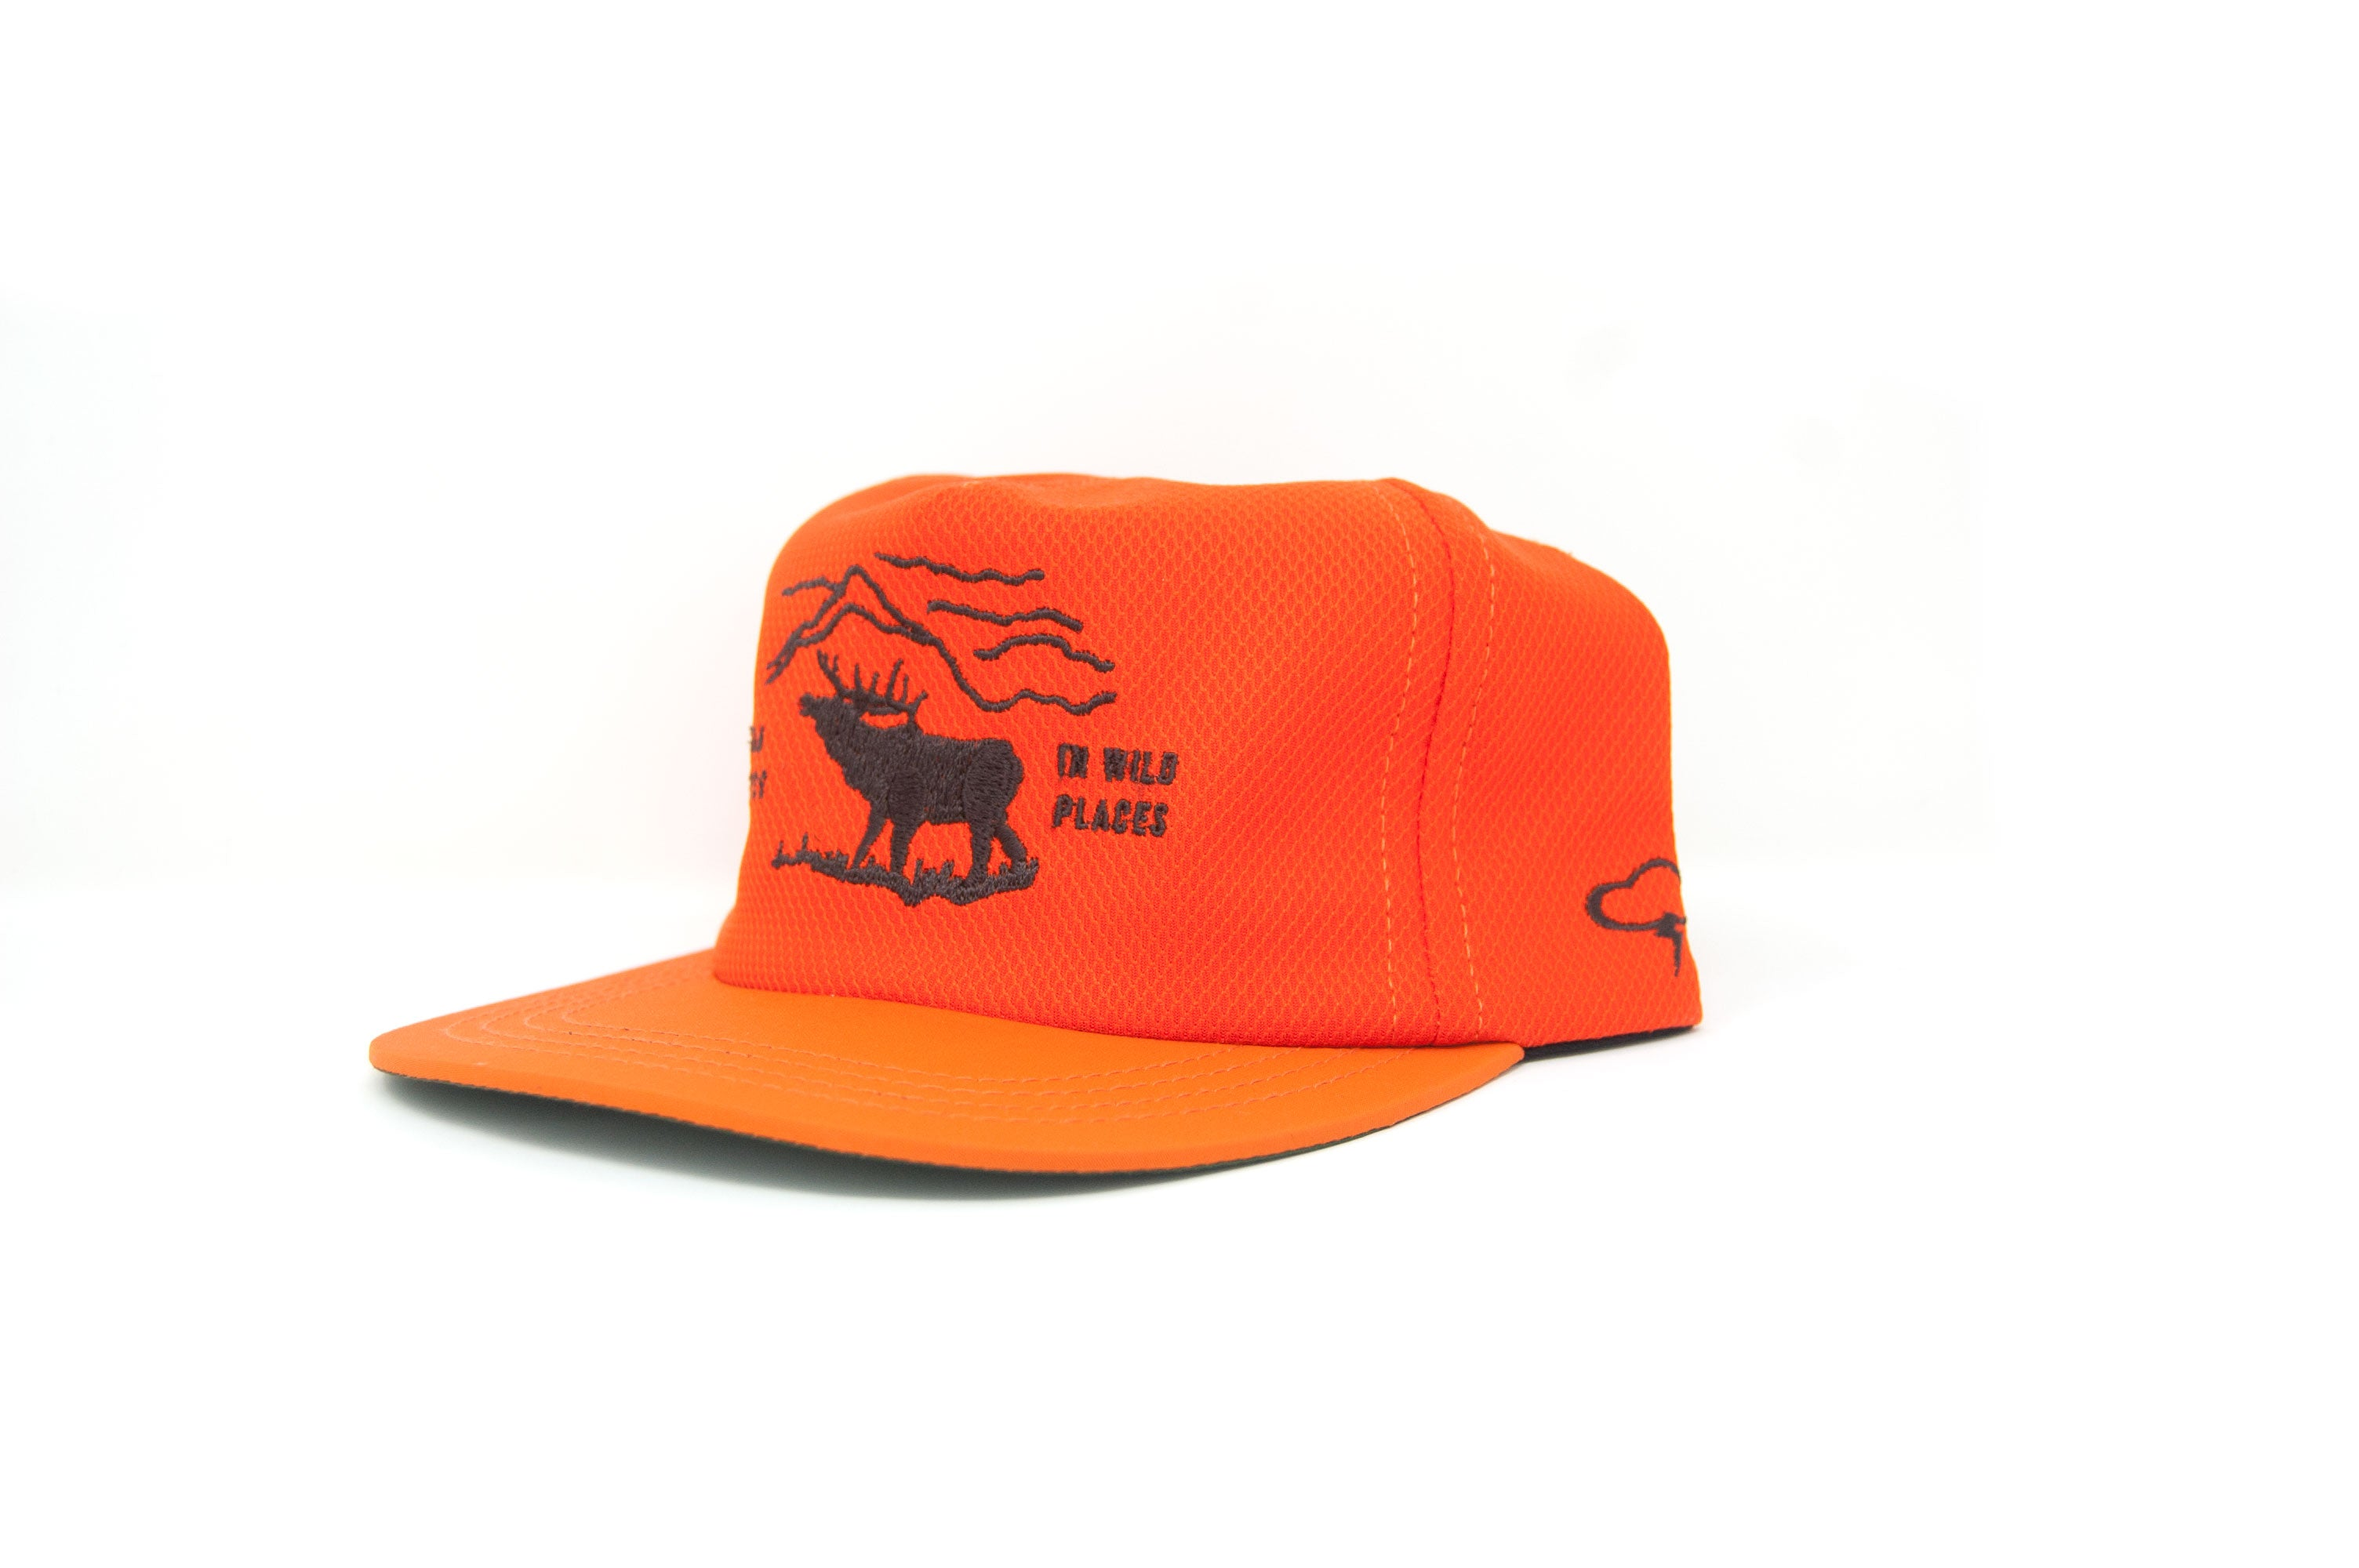 WILD PLACES Strapback - Safety Orange